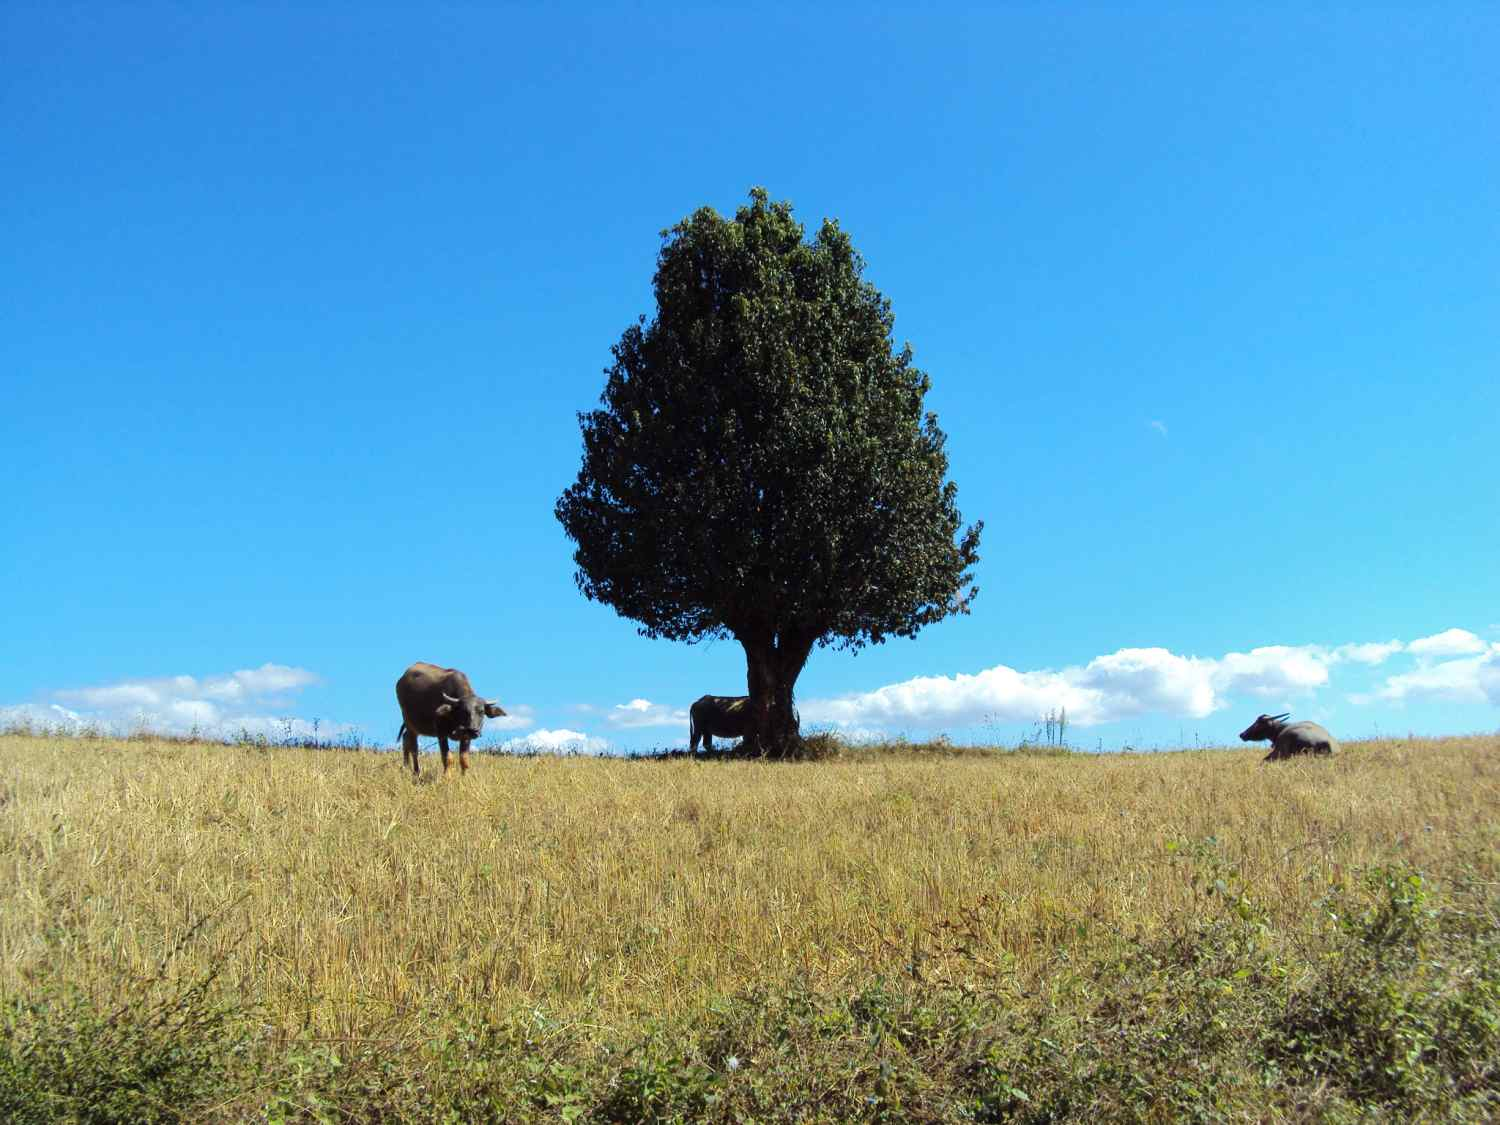 Trees and Buffalos